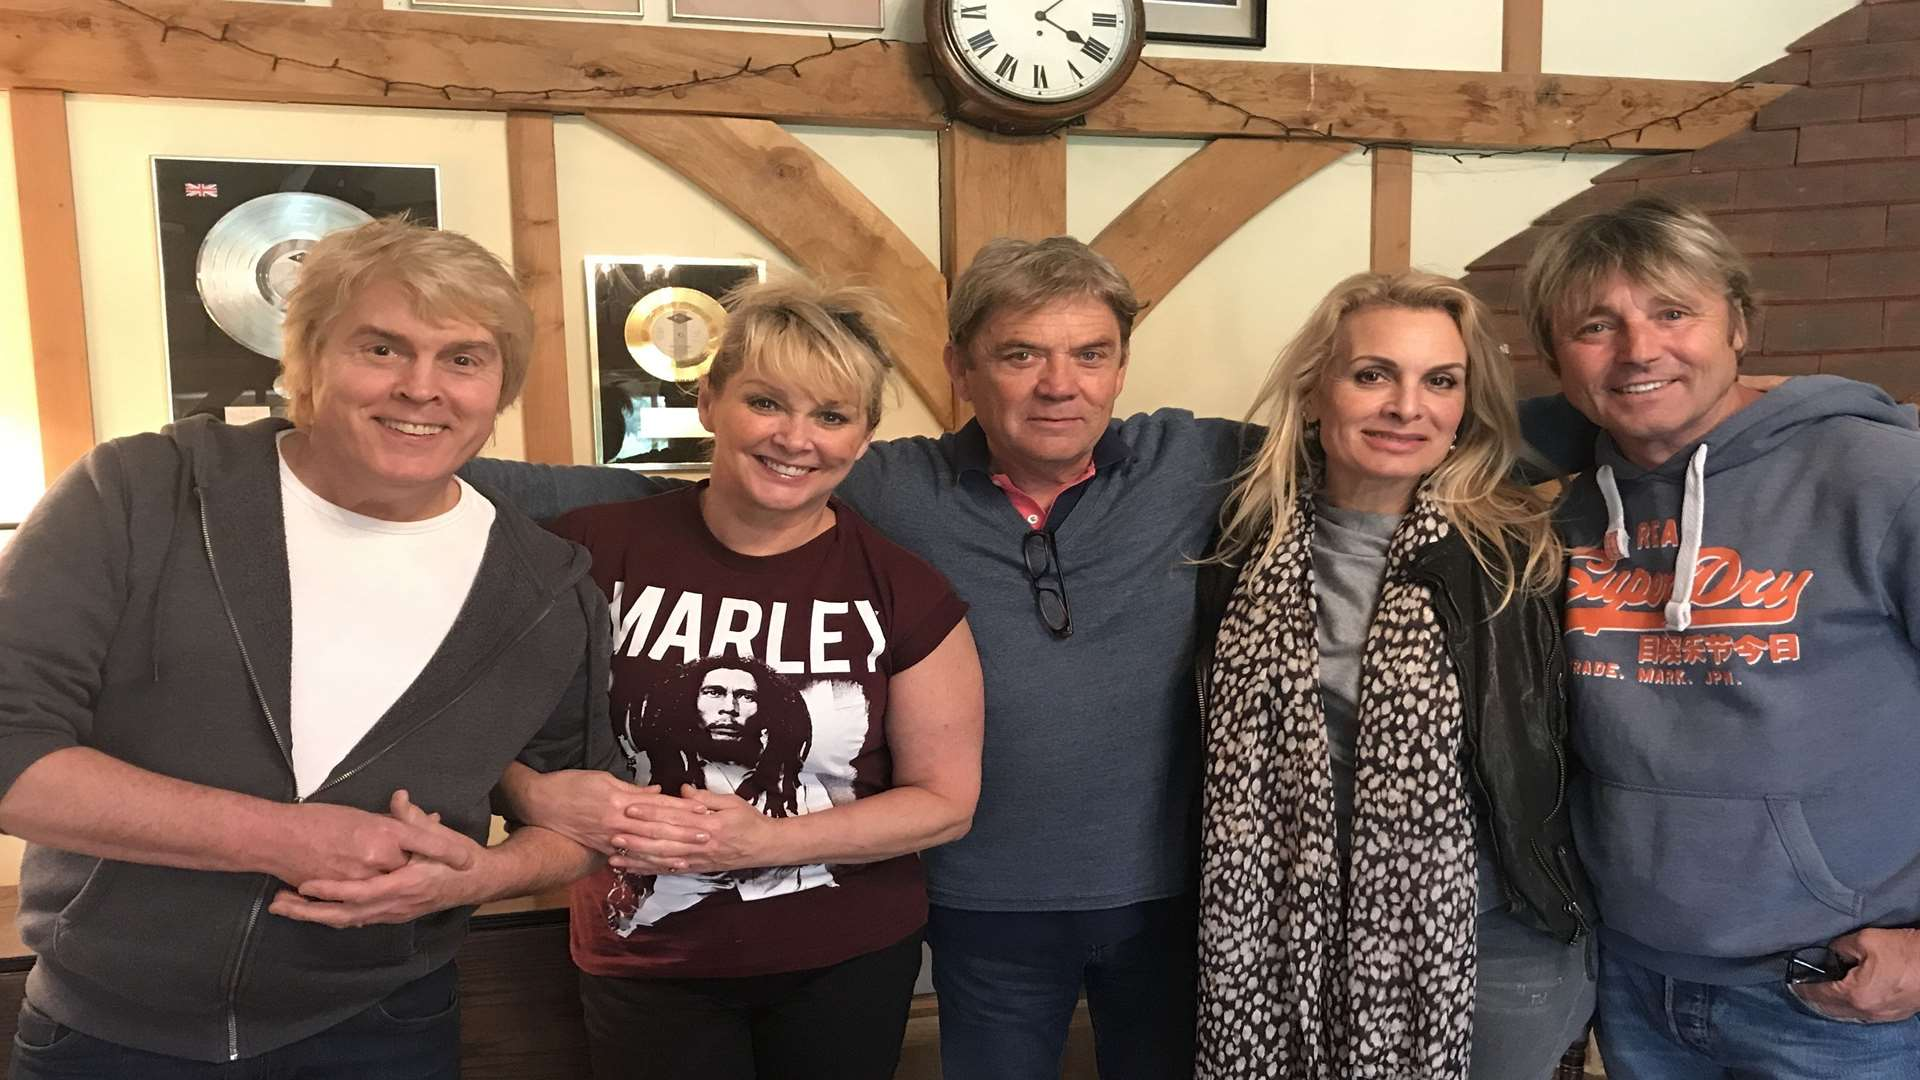 The Fizz band members with record producer Mike Stock (from left): Mike Nolan, Cheryl Baker, Mike Stock, Jay Aston and Bobby McVay. Picture: PA Photo/MPG Records.